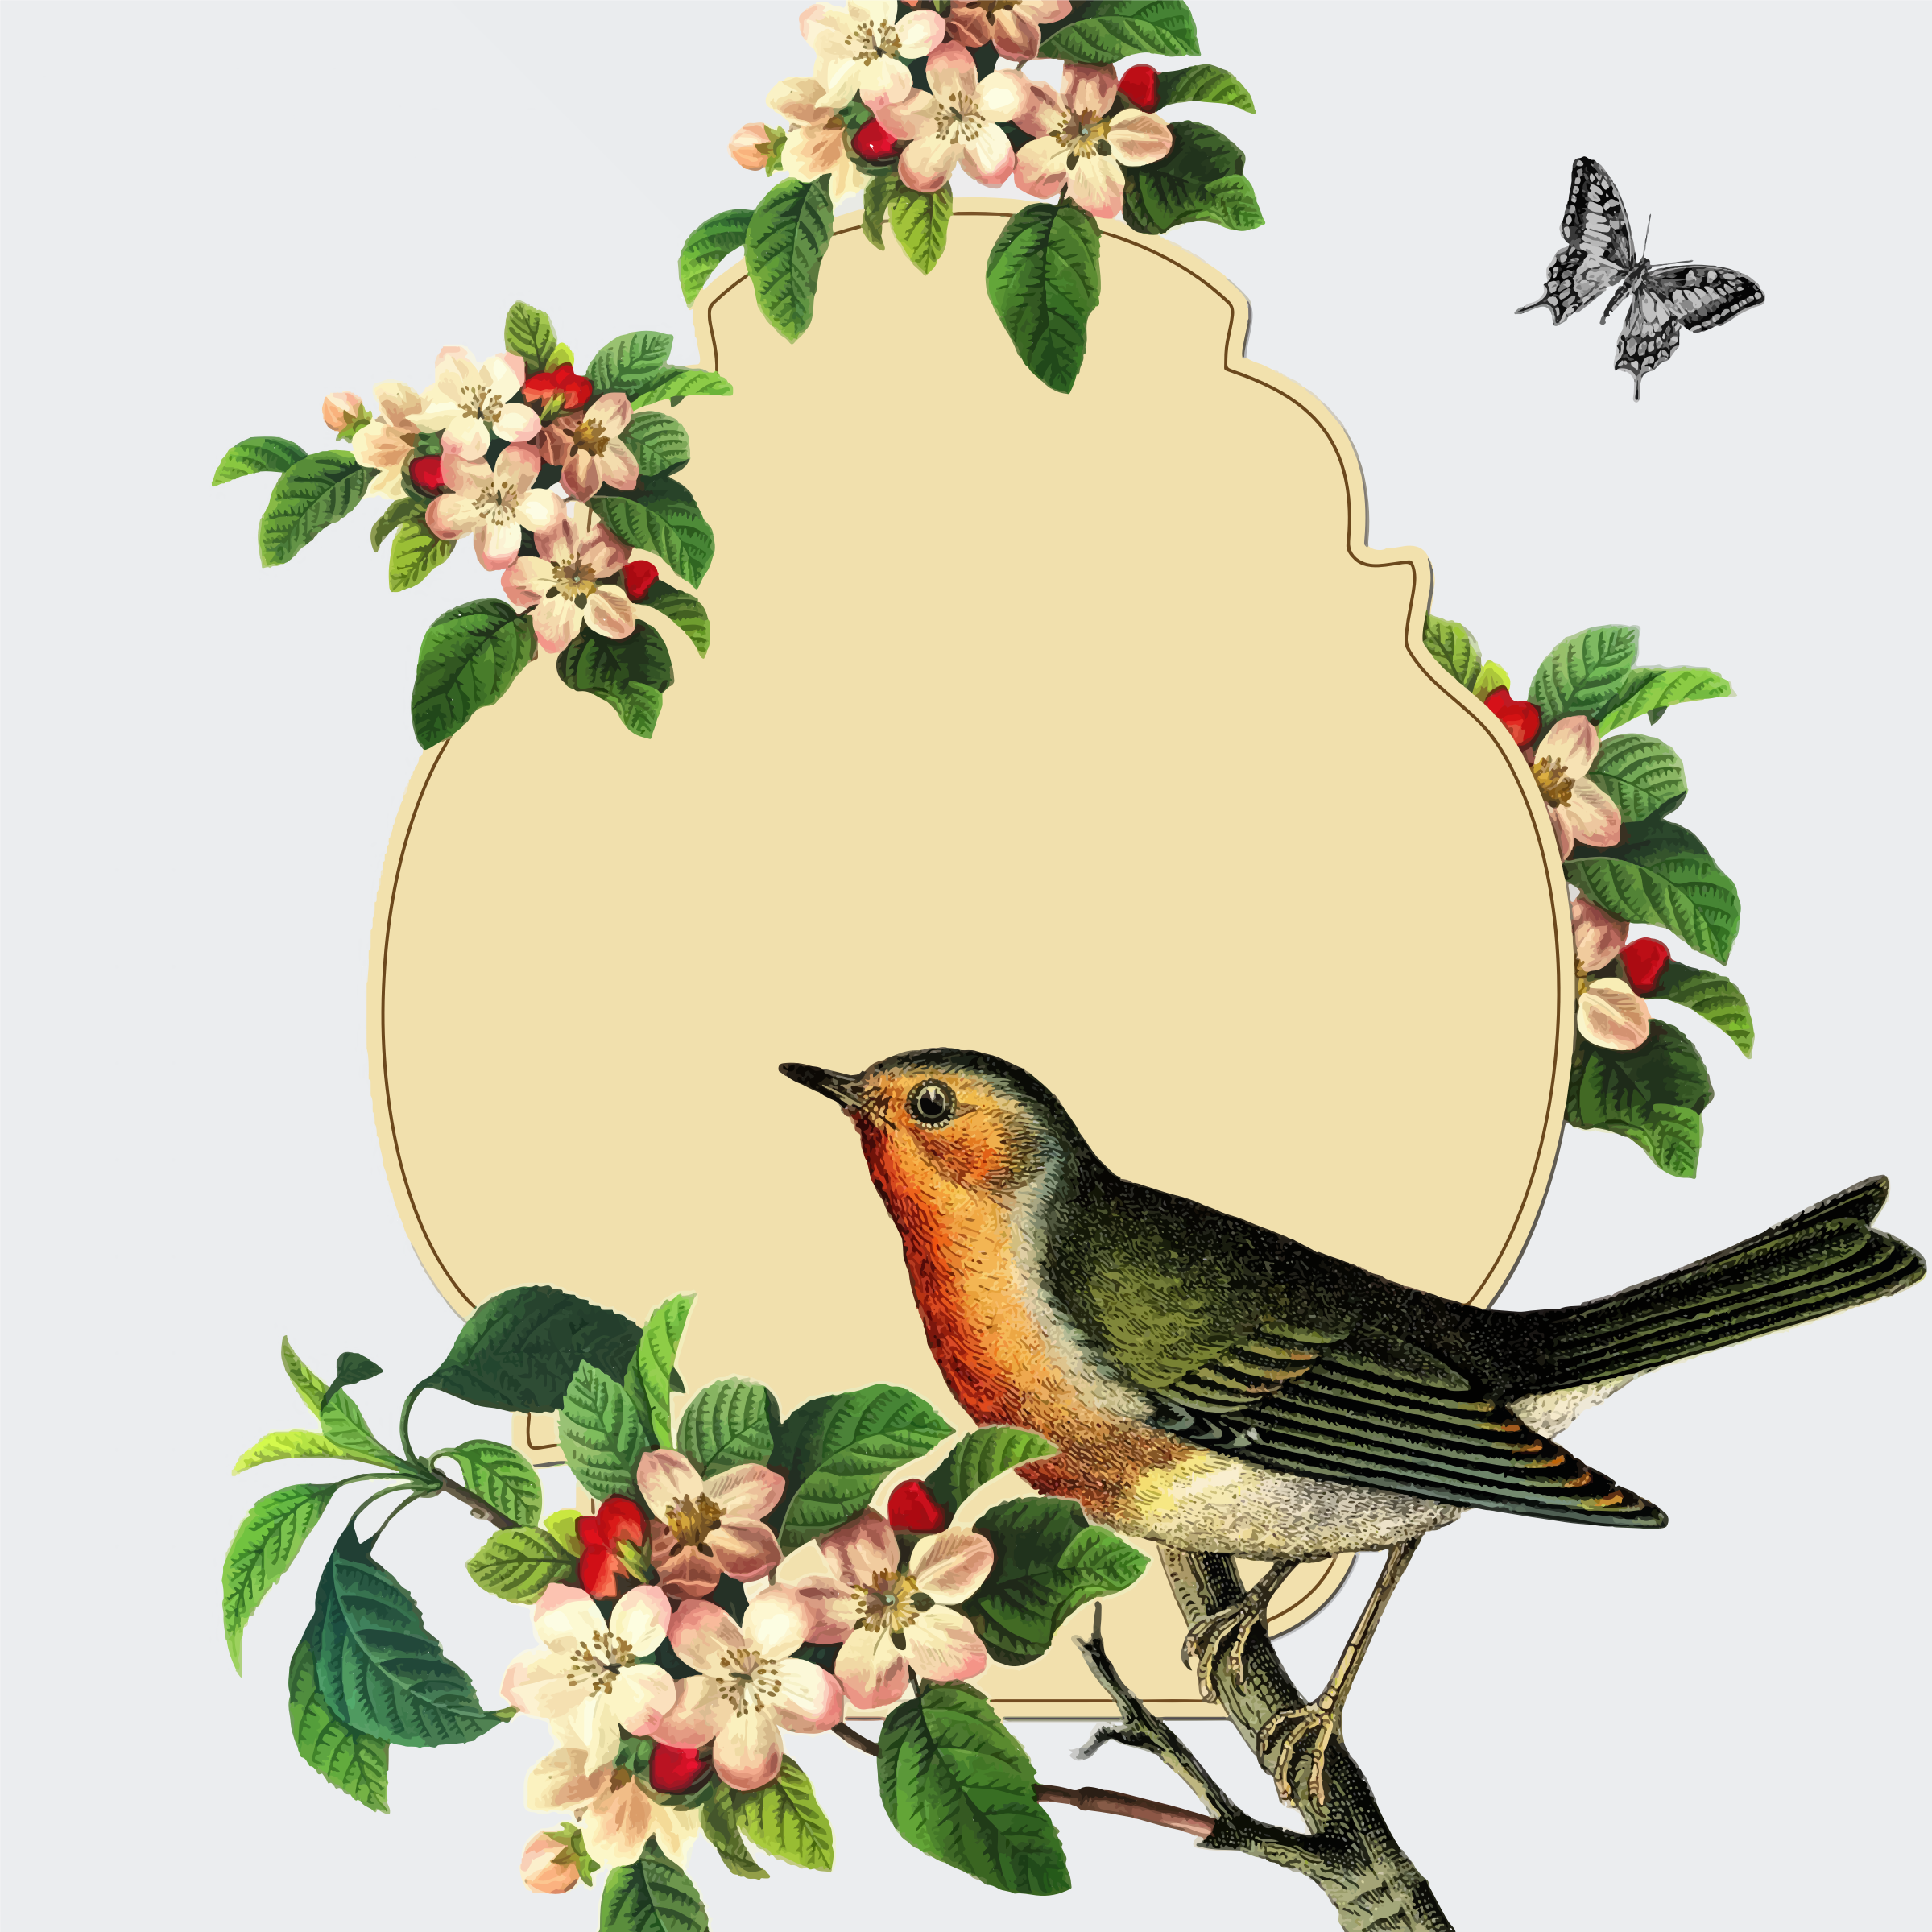 2399x2399 Vintage Bird With Apple Blossom By @gdj, From Pdp.,